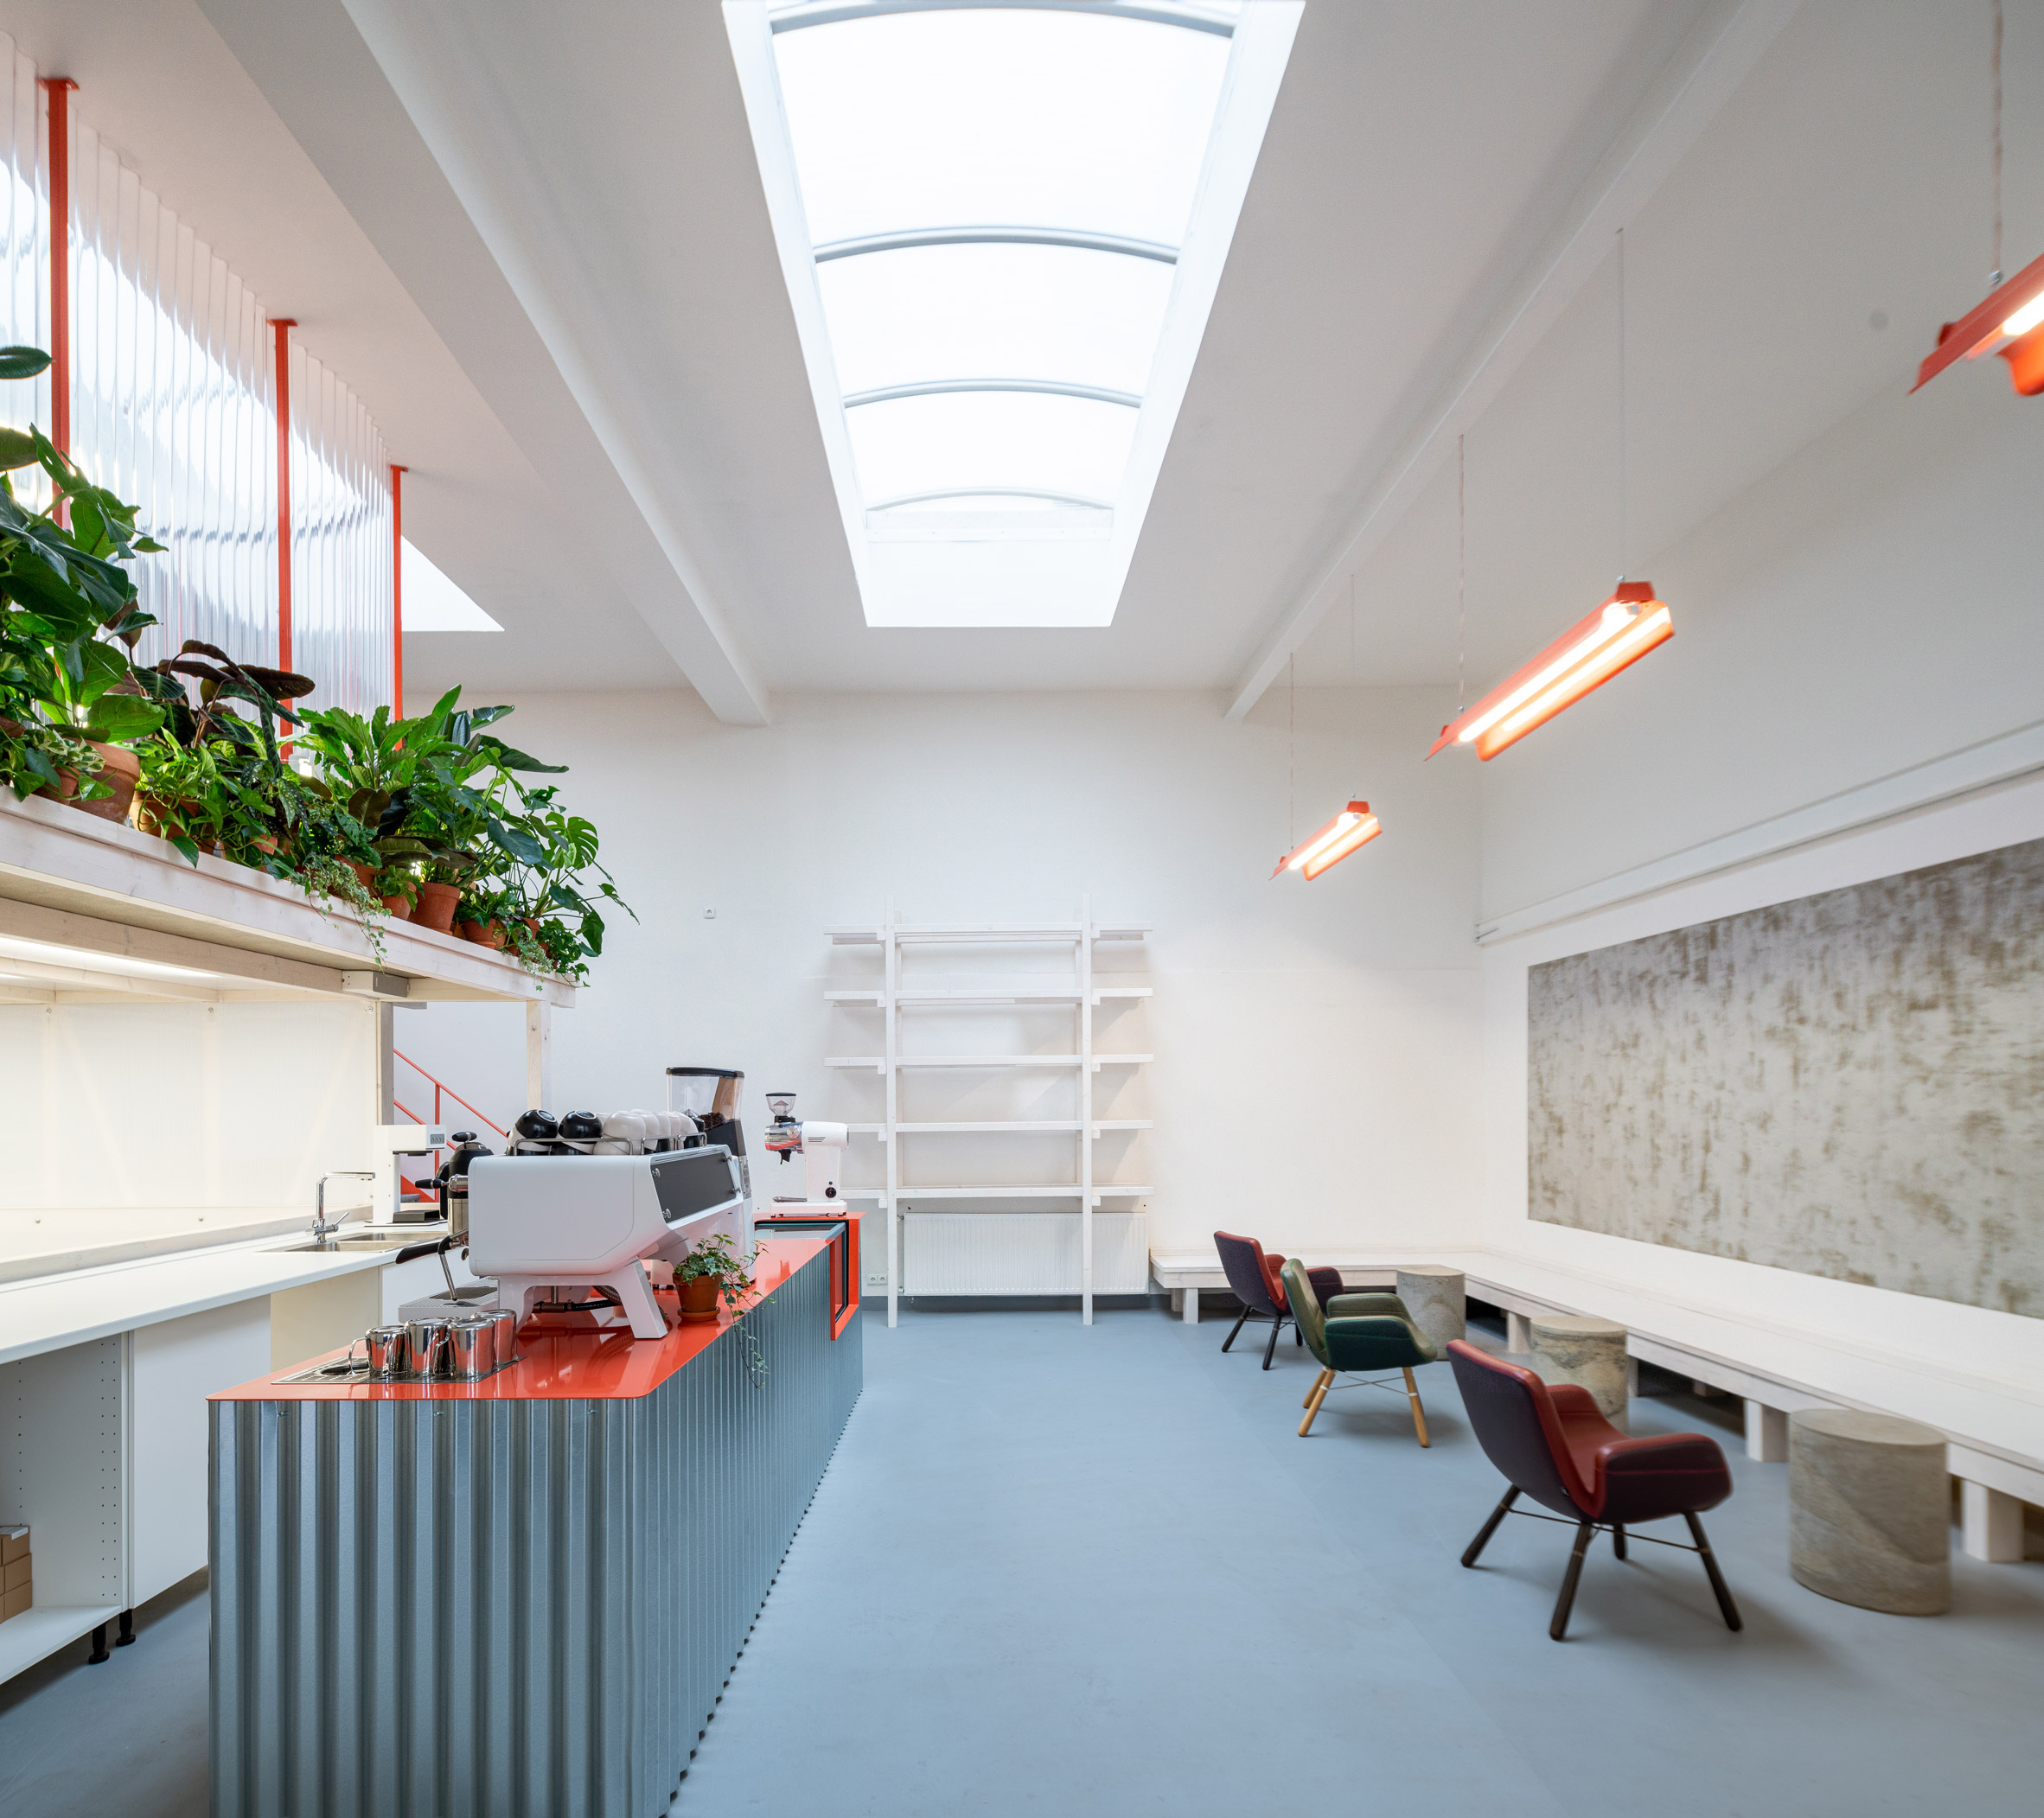 Skylight and seating area in Ground Coffee Hub